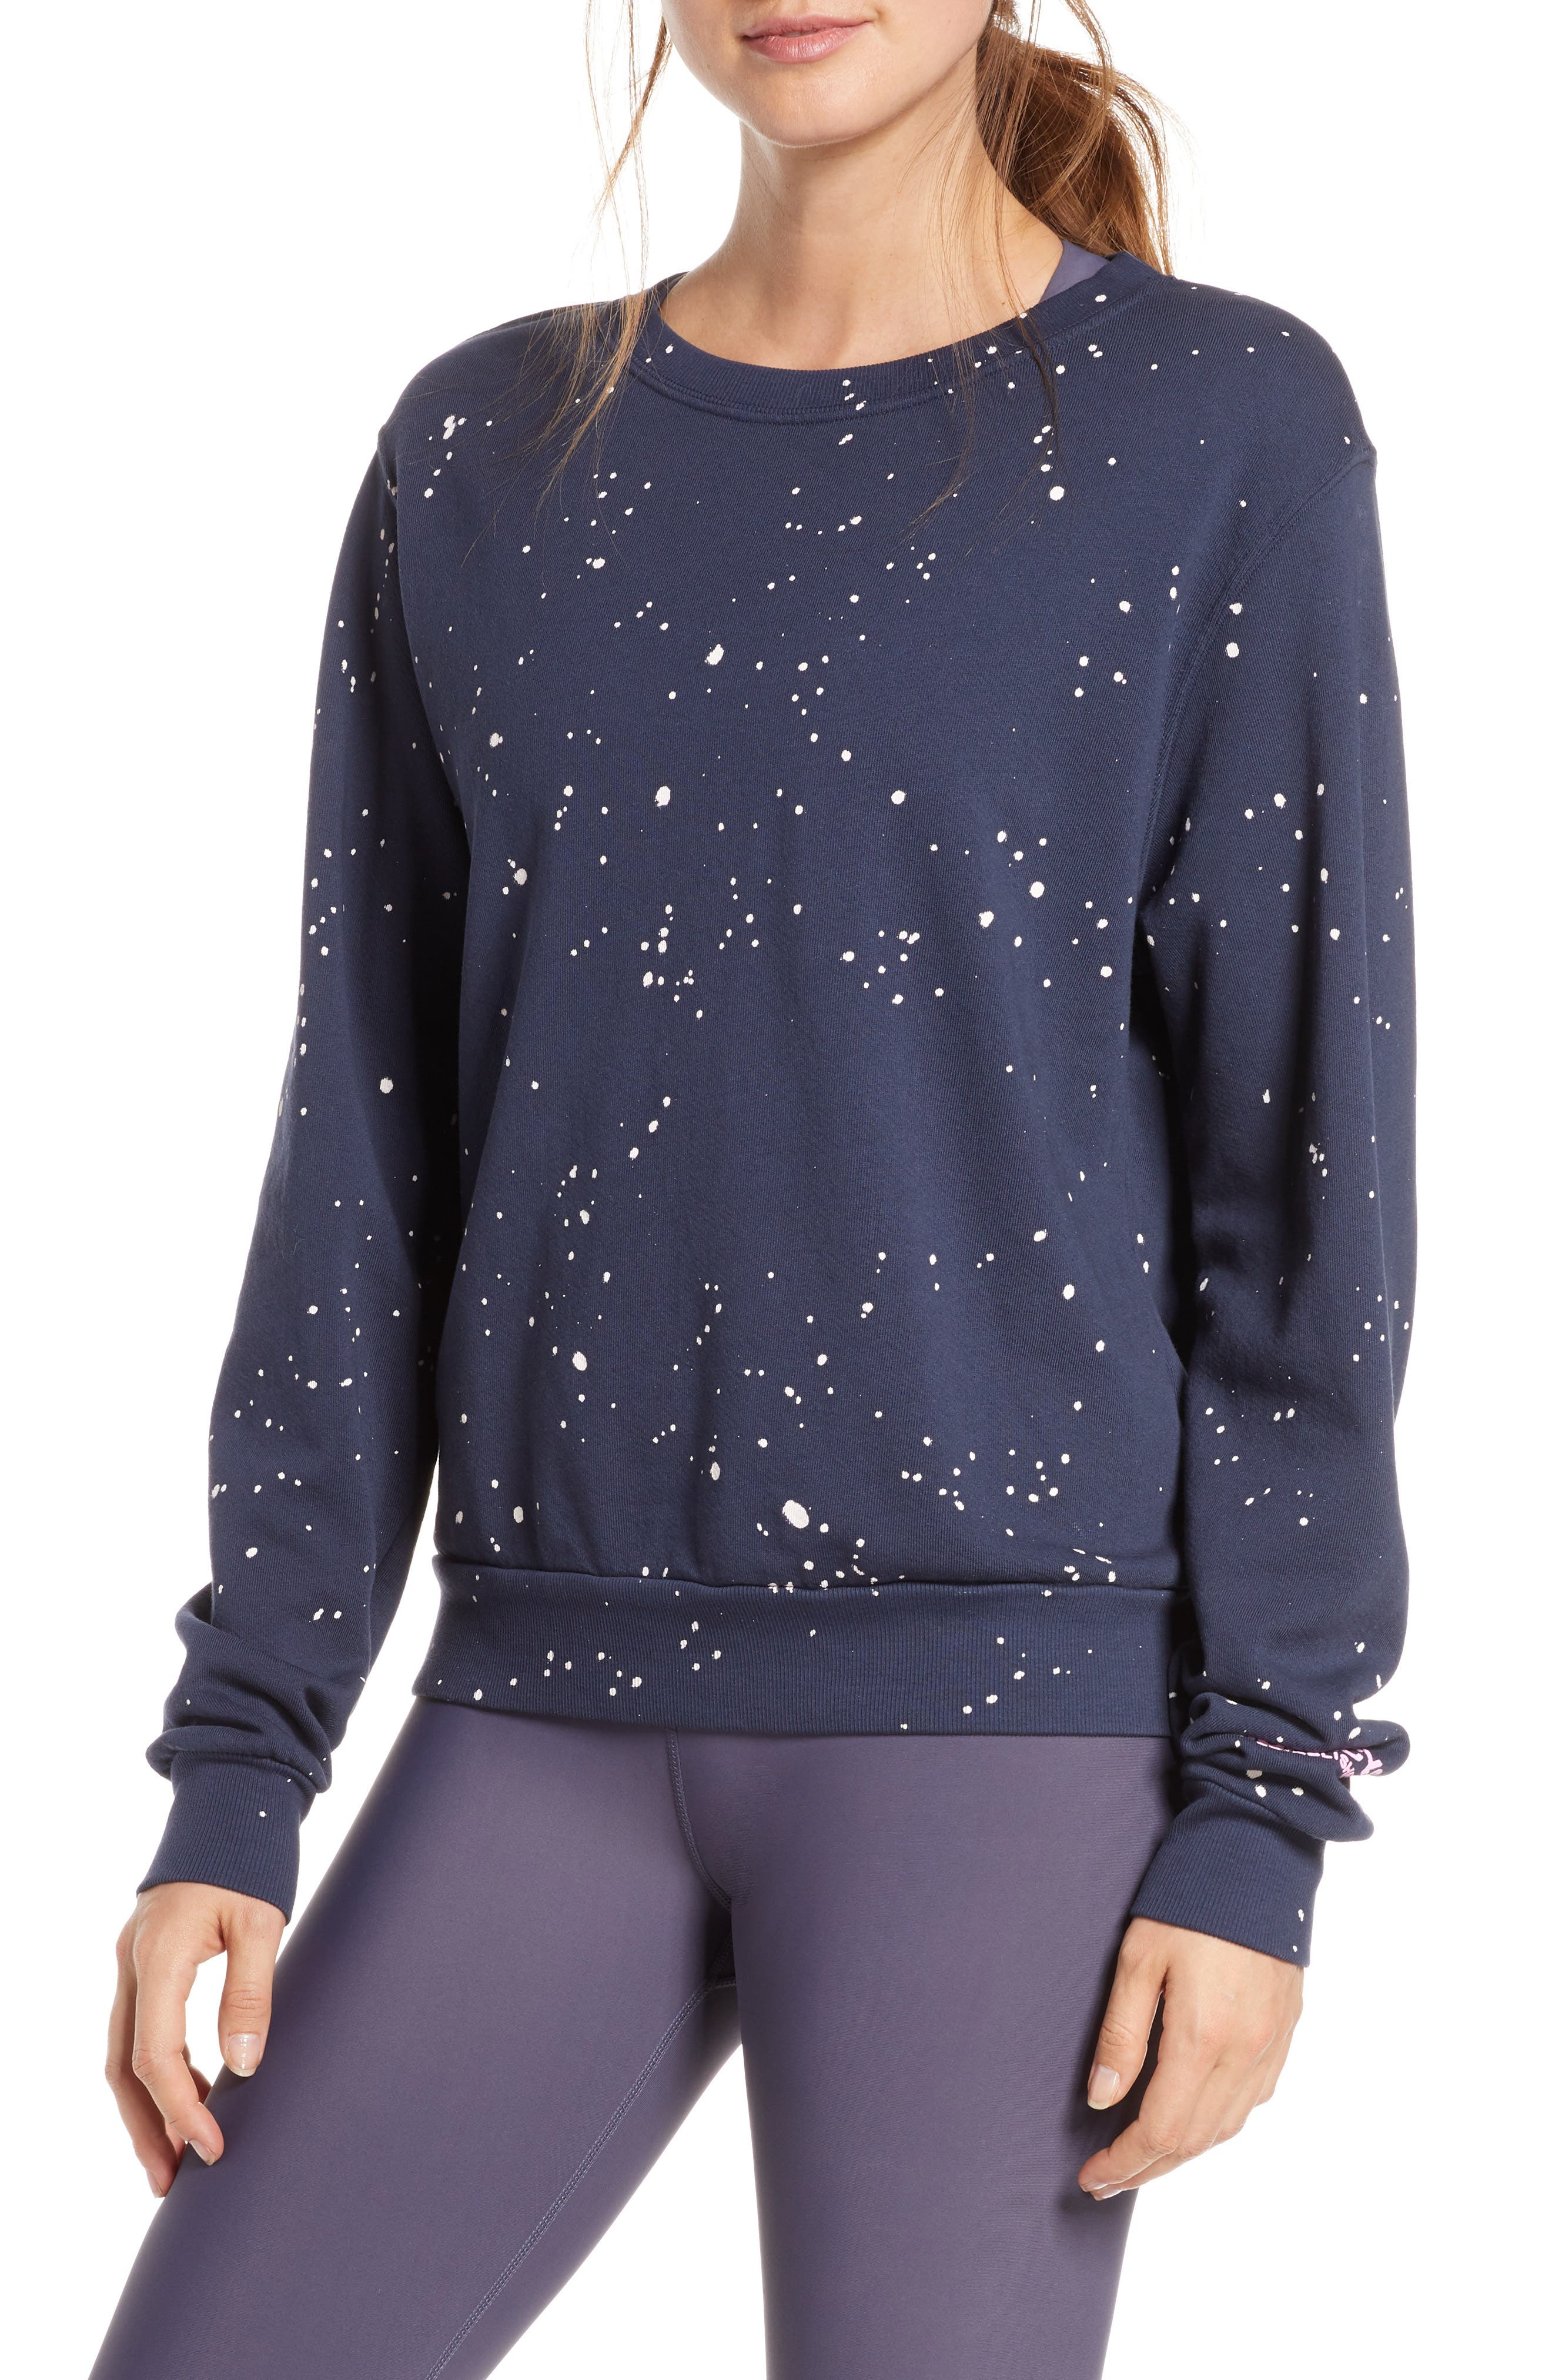 Soul By Soulcycle Splatter Paint Sweatshirt, Blue